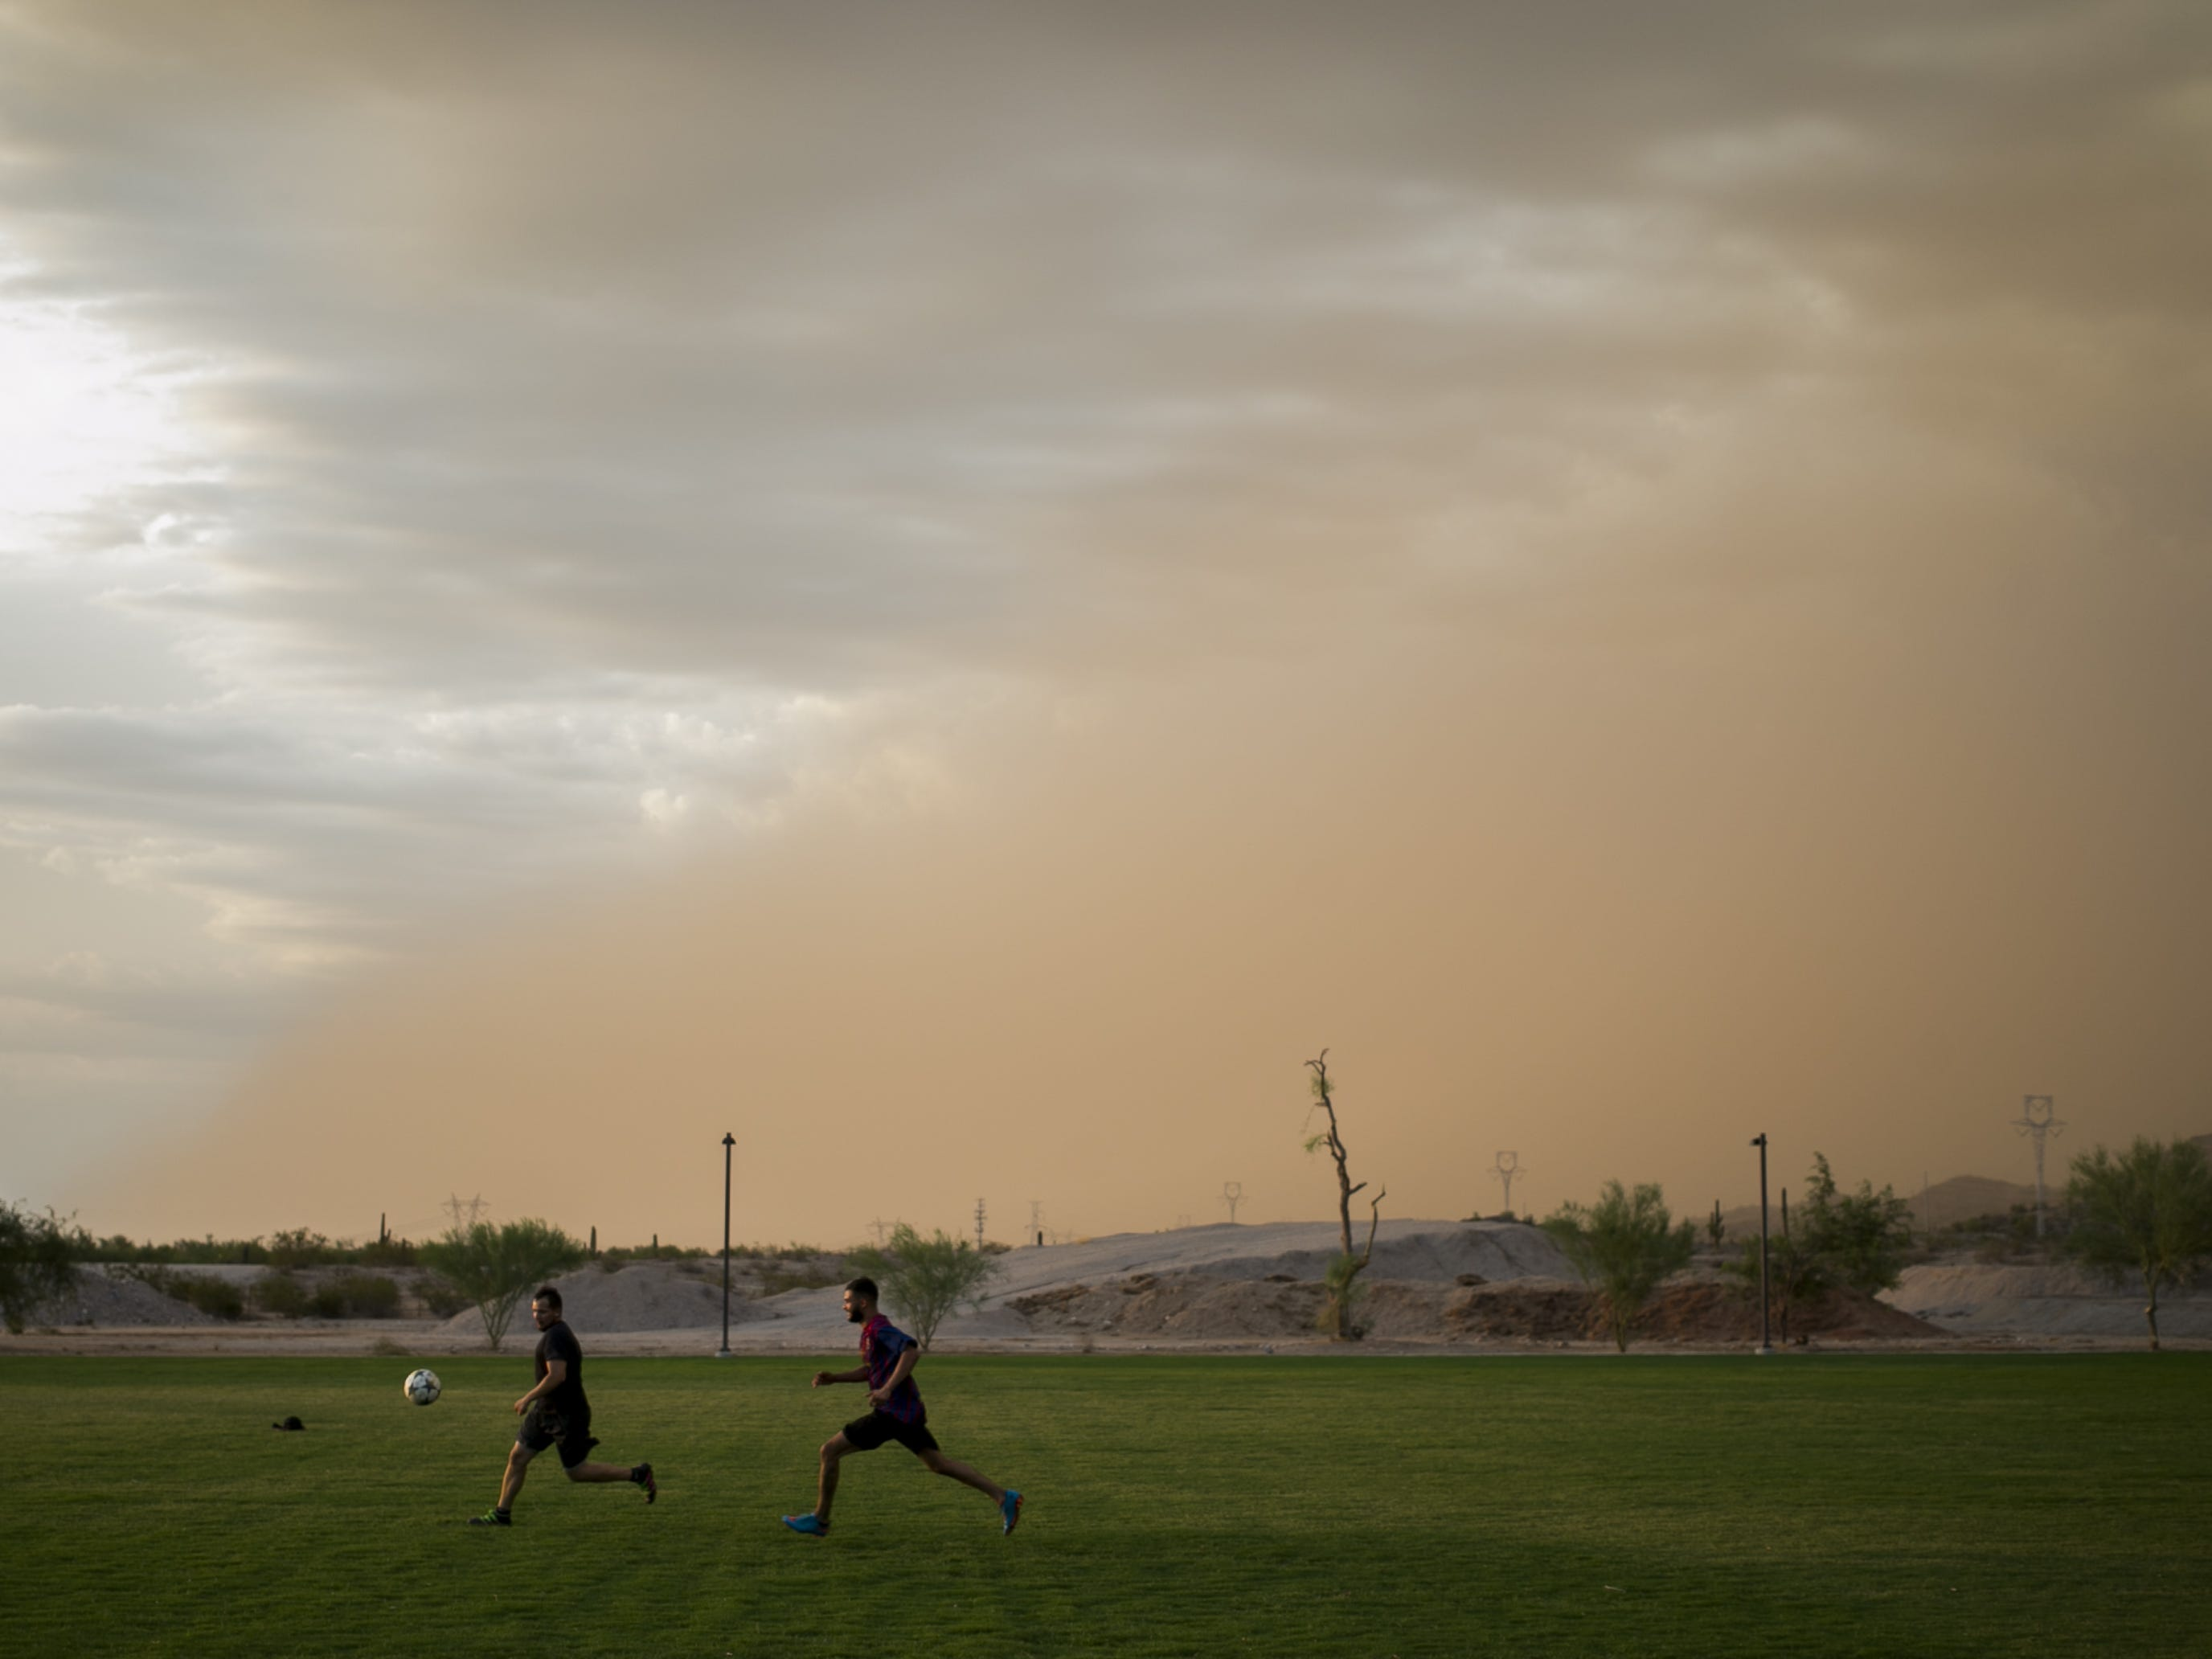 Cristian Martinez (left) and Rosendo Gonzalez (right) play soccer as a dust storm approaches near Estrella Foothills High School in Goodyear, Ariz. on Sun. Aug 12, 2018.